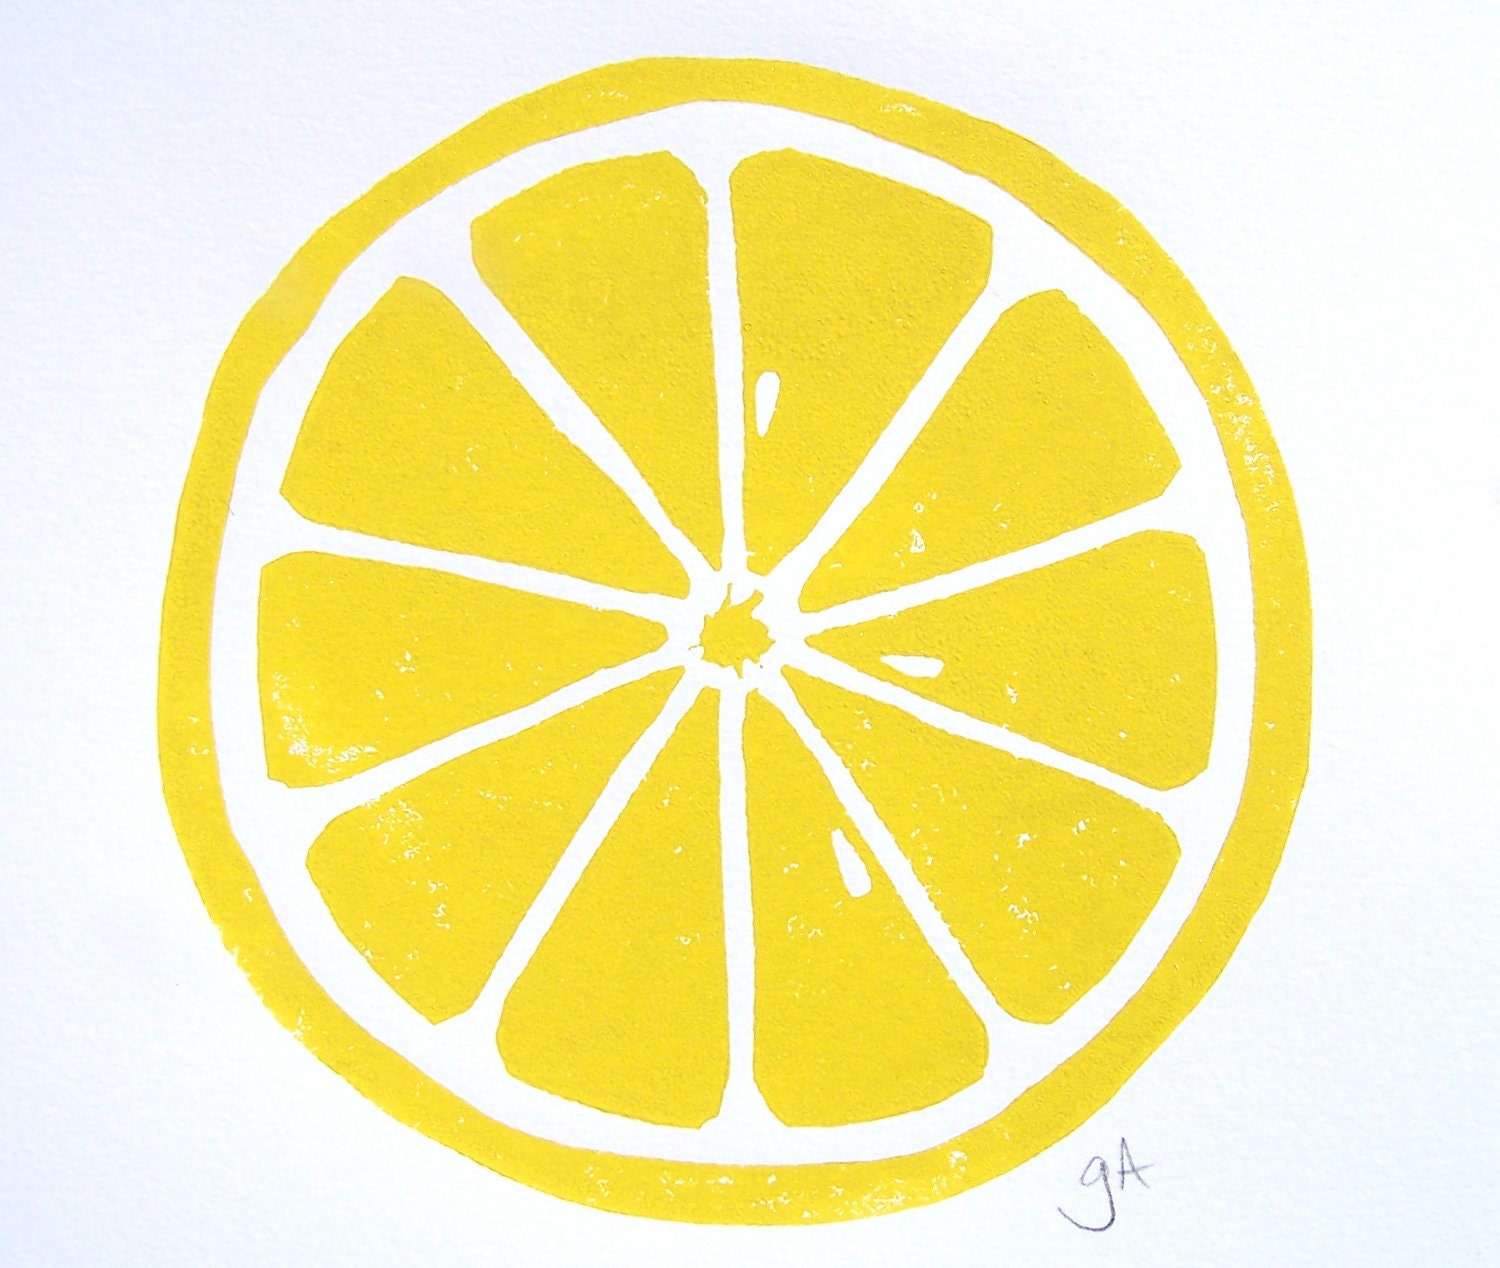 Powder Room Design Print Lemon Yellow Linocut Citrus 8x10 Letterpress Print